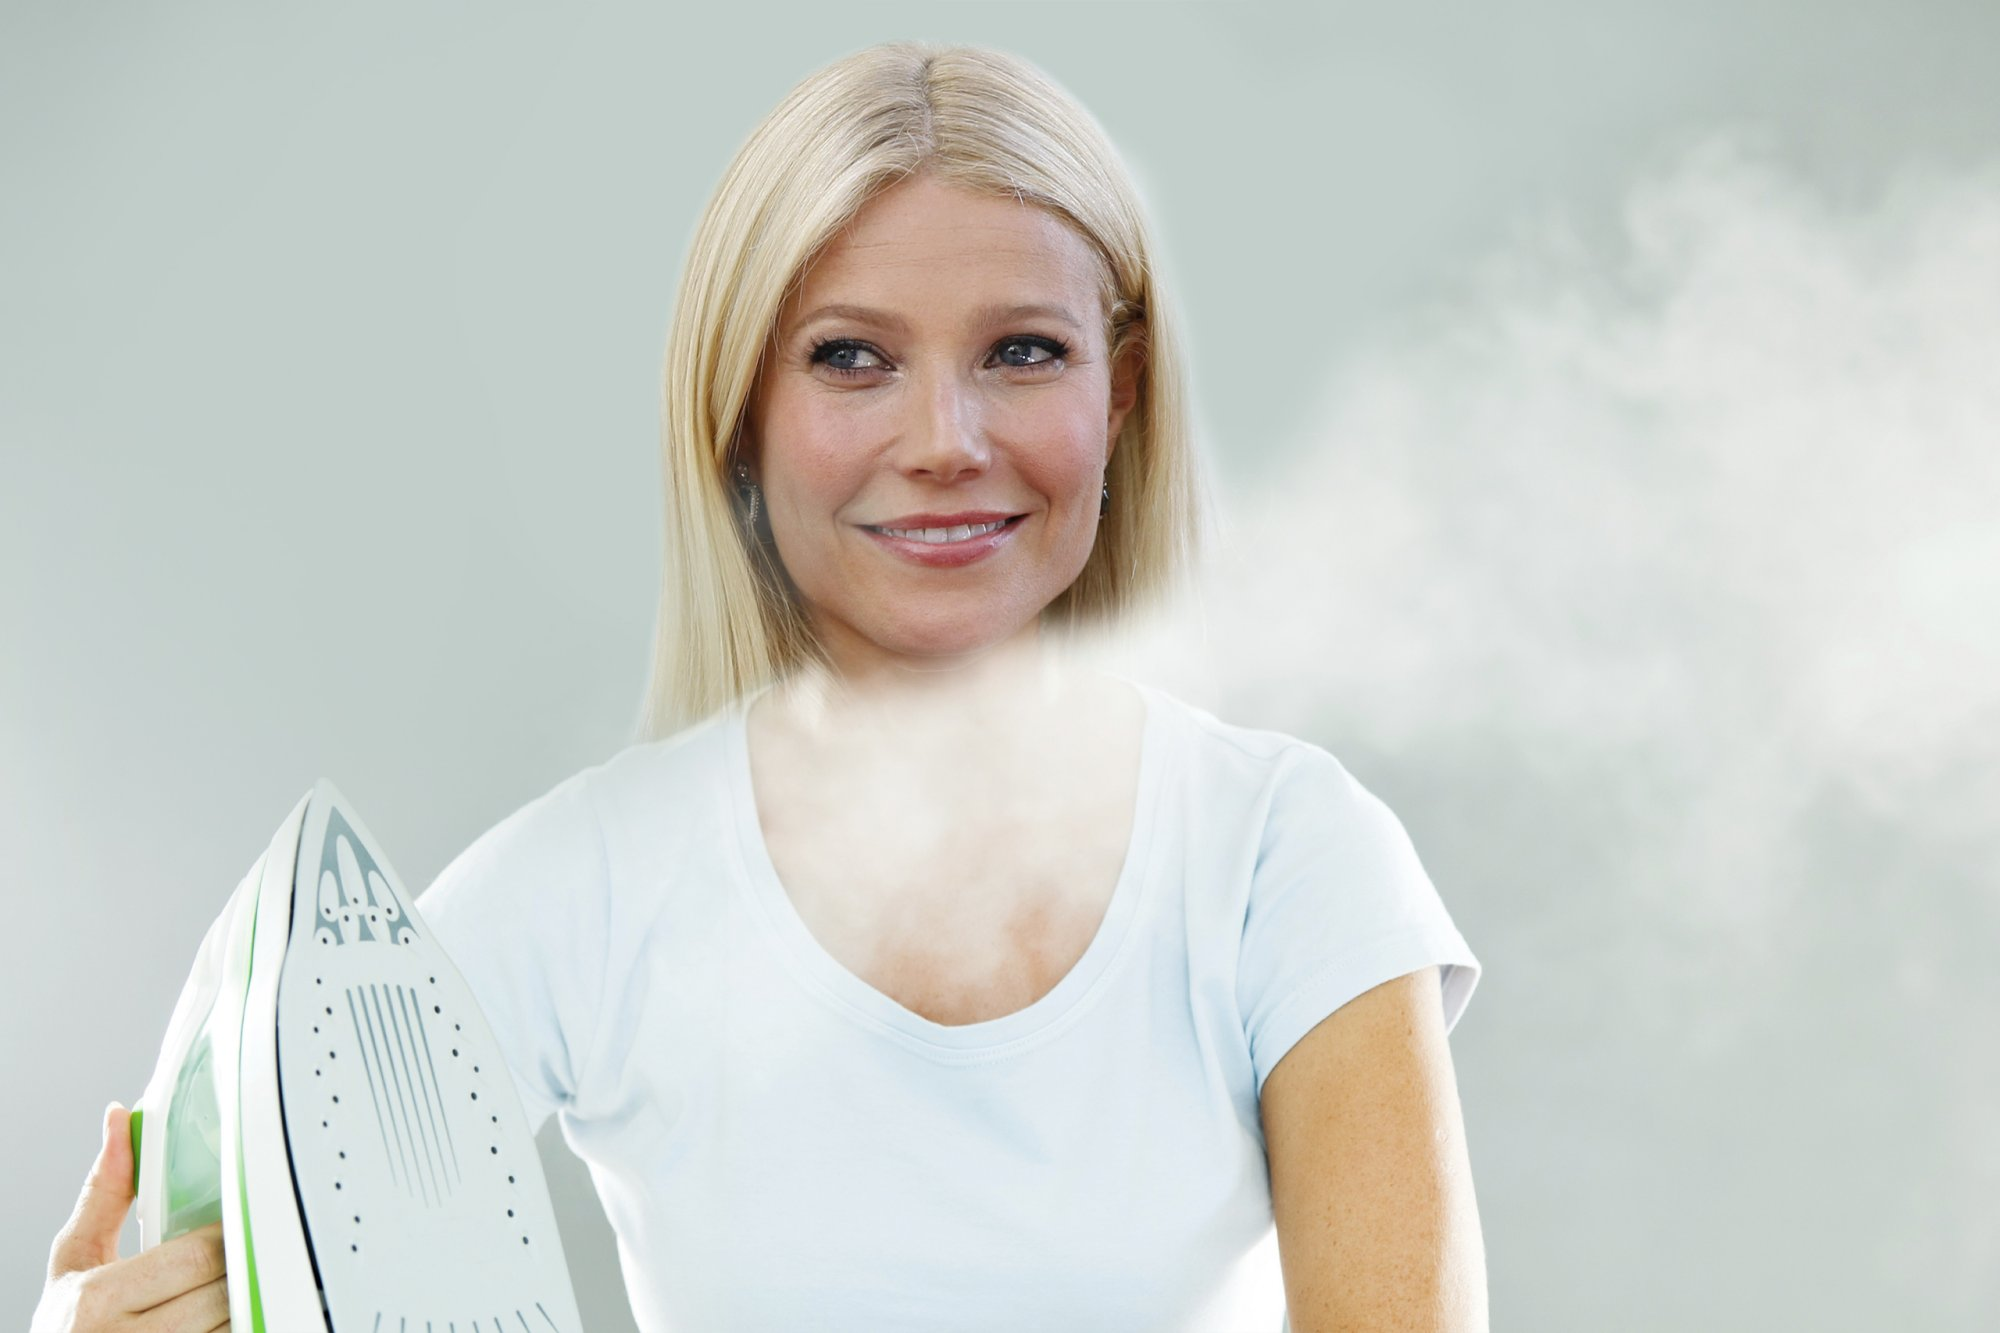 Gwyneth Paltrow demonstrating the benefits of facial steaming